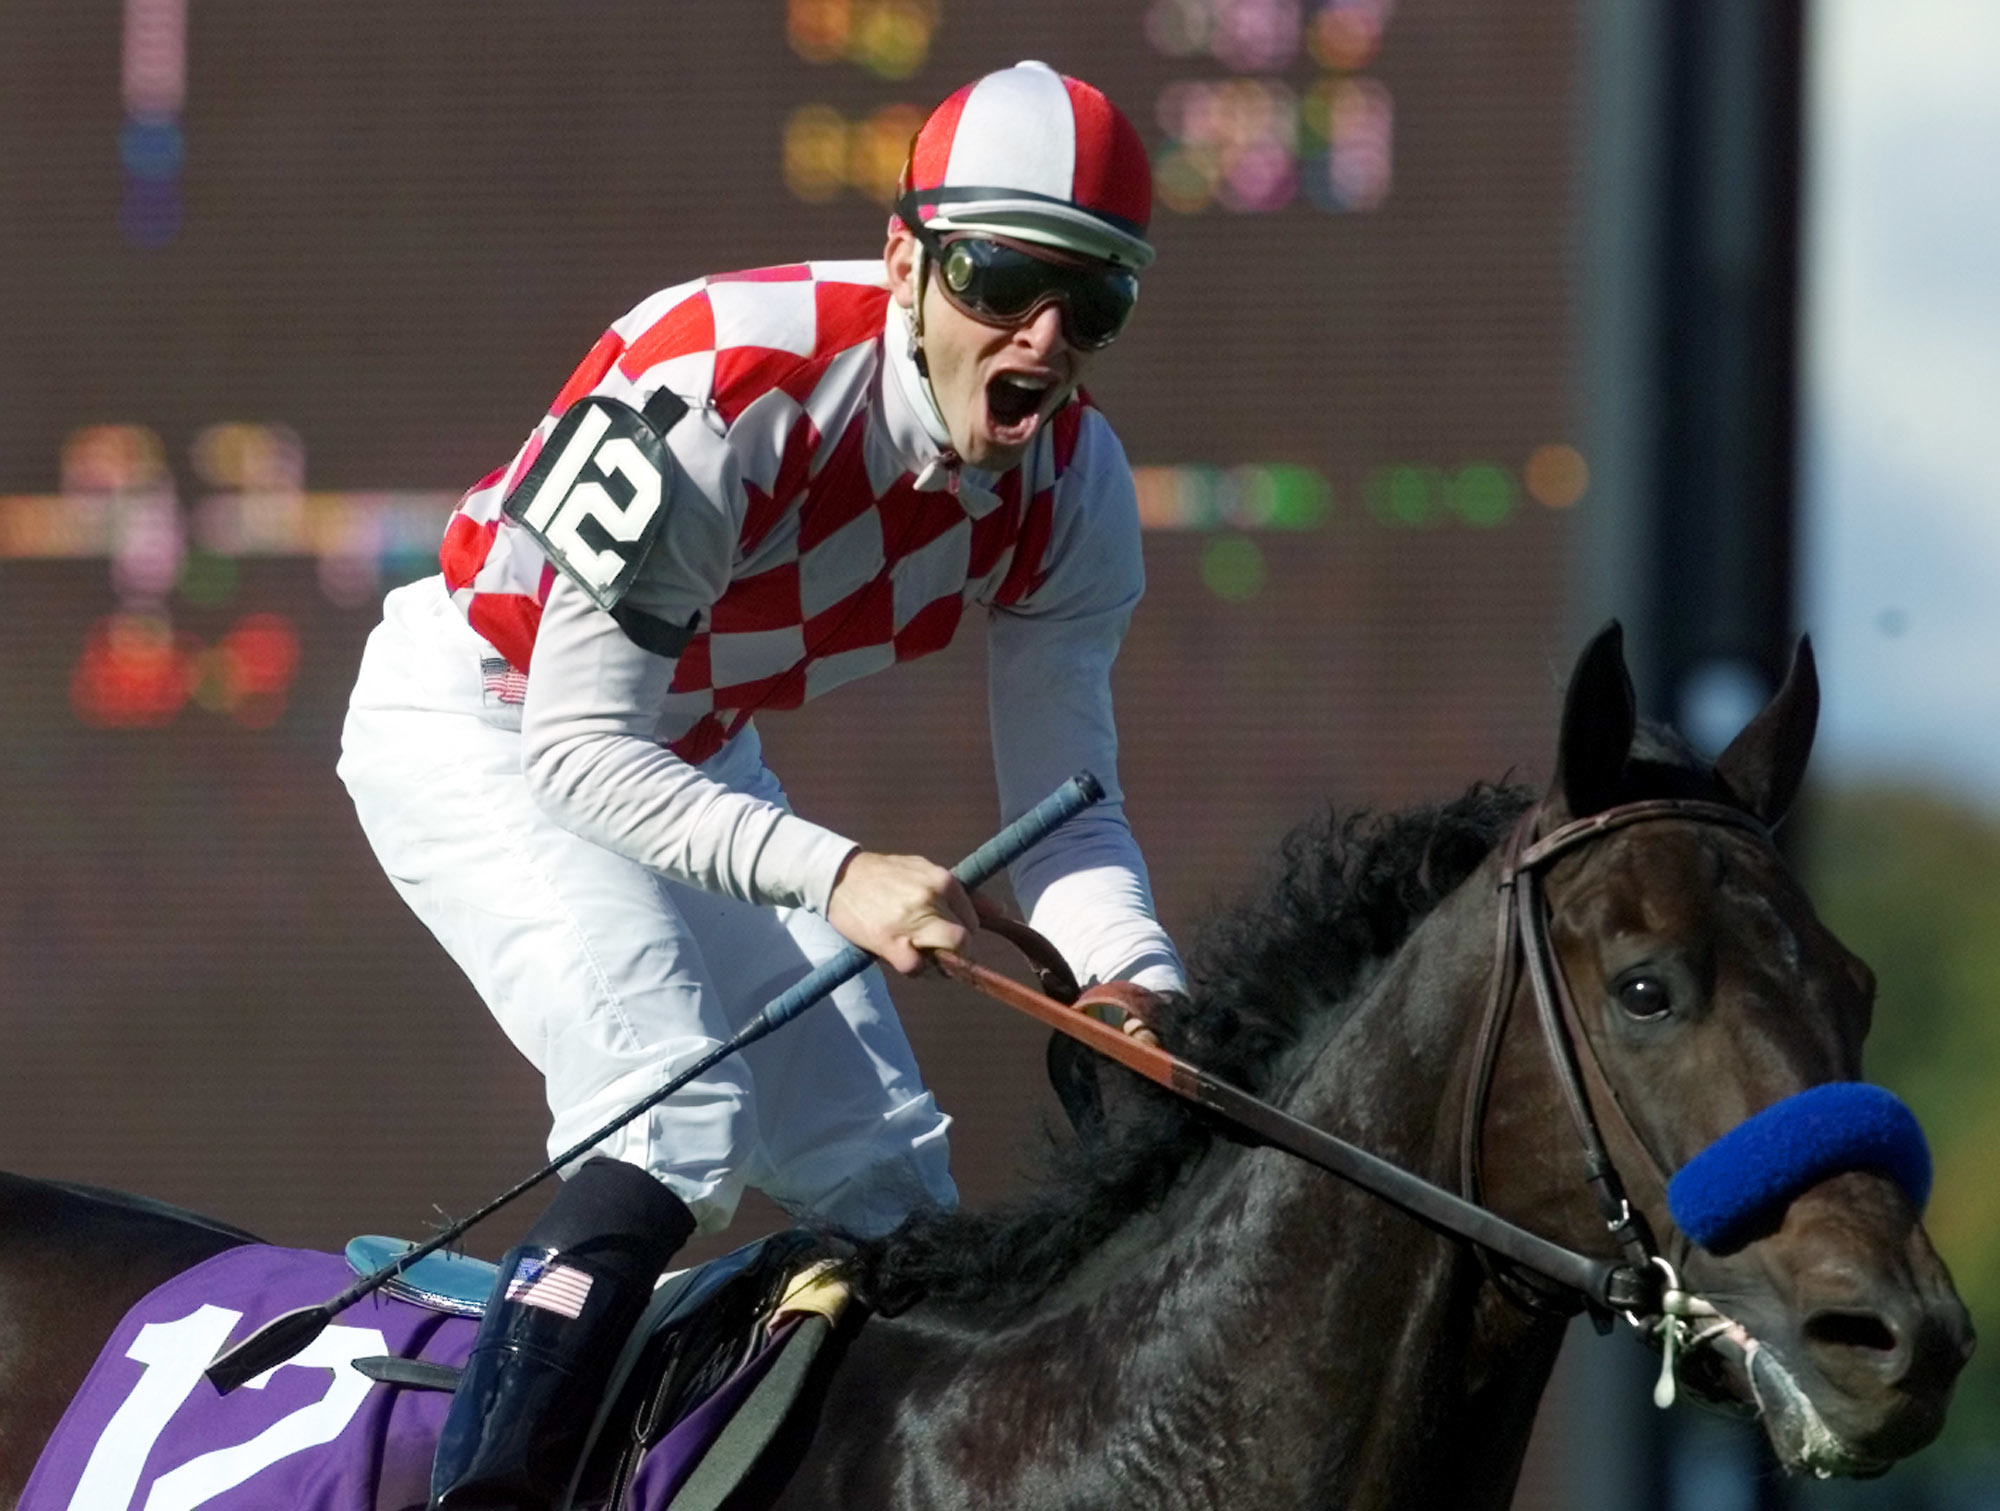 Jockey Jose Valdivia, Jr., reacts aboard Val Royal after winning the Breeders Cup Mile Race at Belmont Park Saturday, Oct. 27, 2001 in Elmont, N.Y.